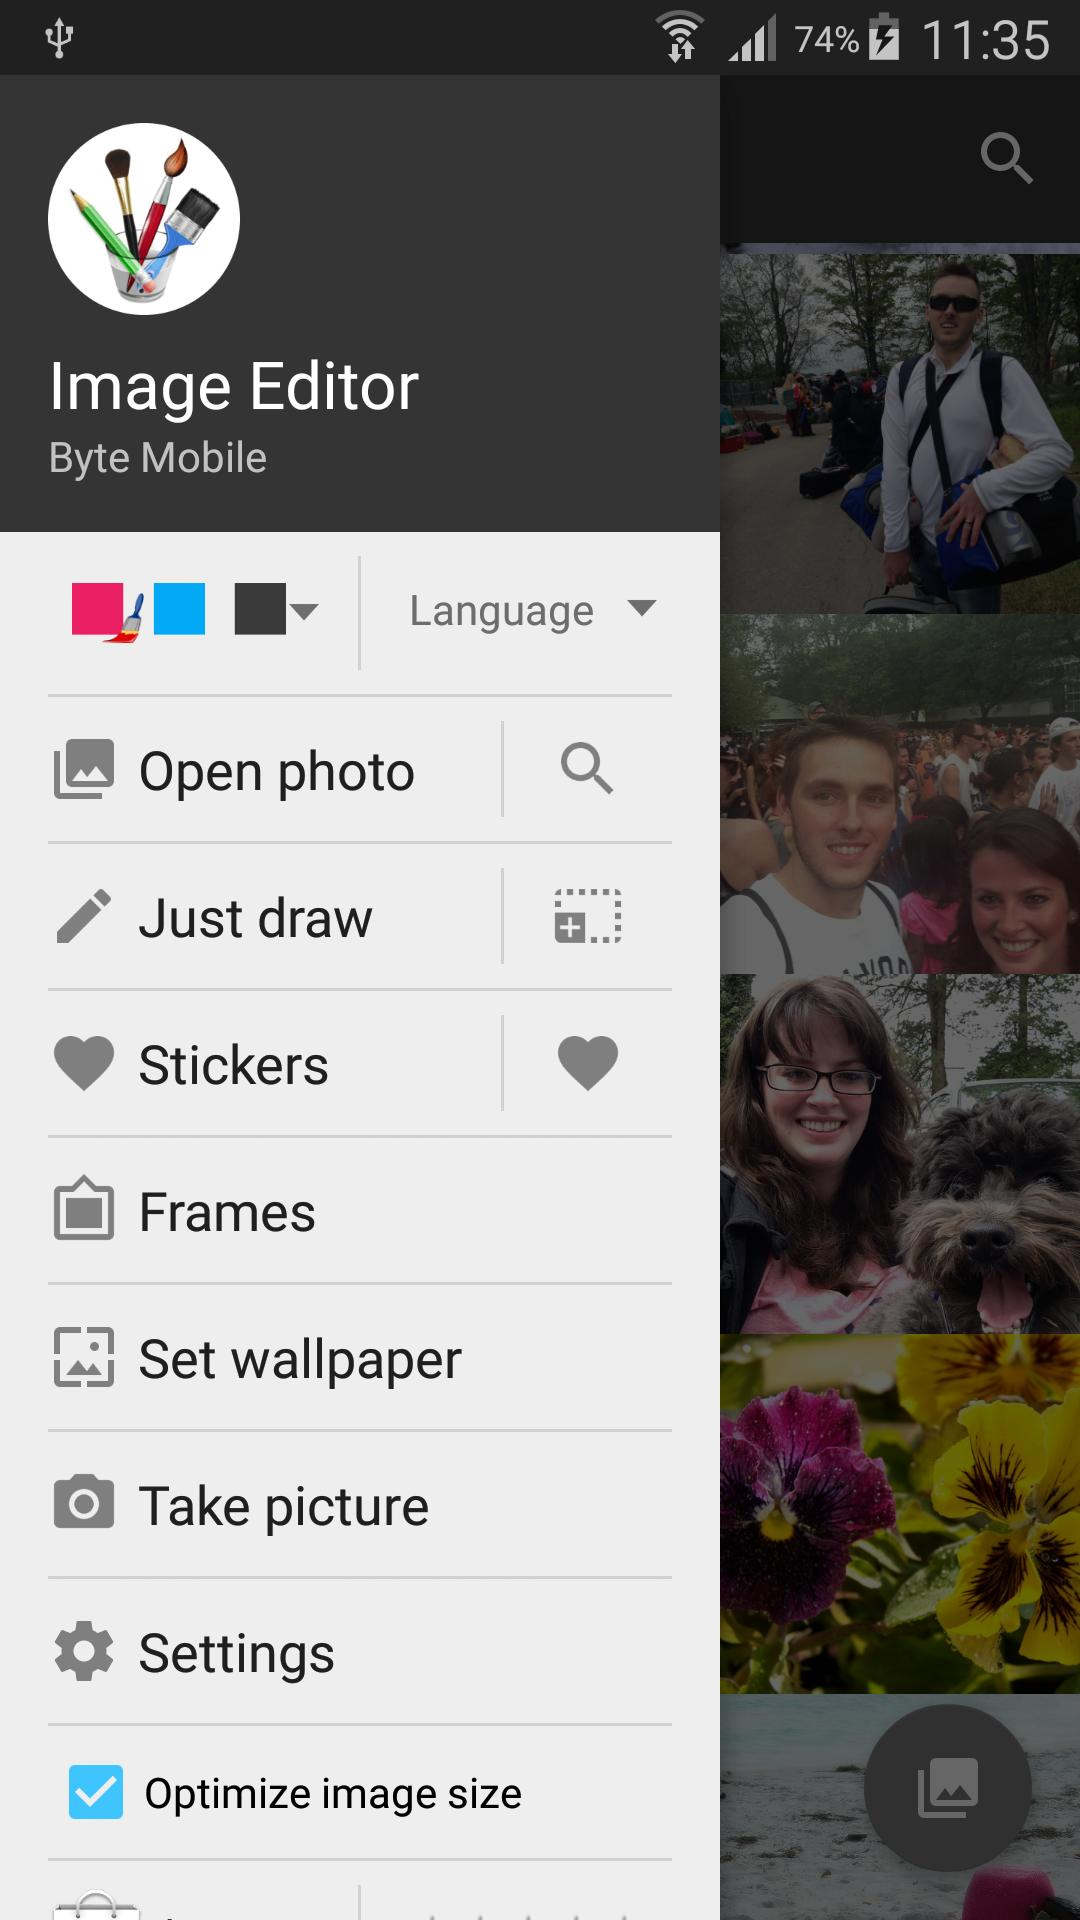 Image-Editor-Byte-Mobile